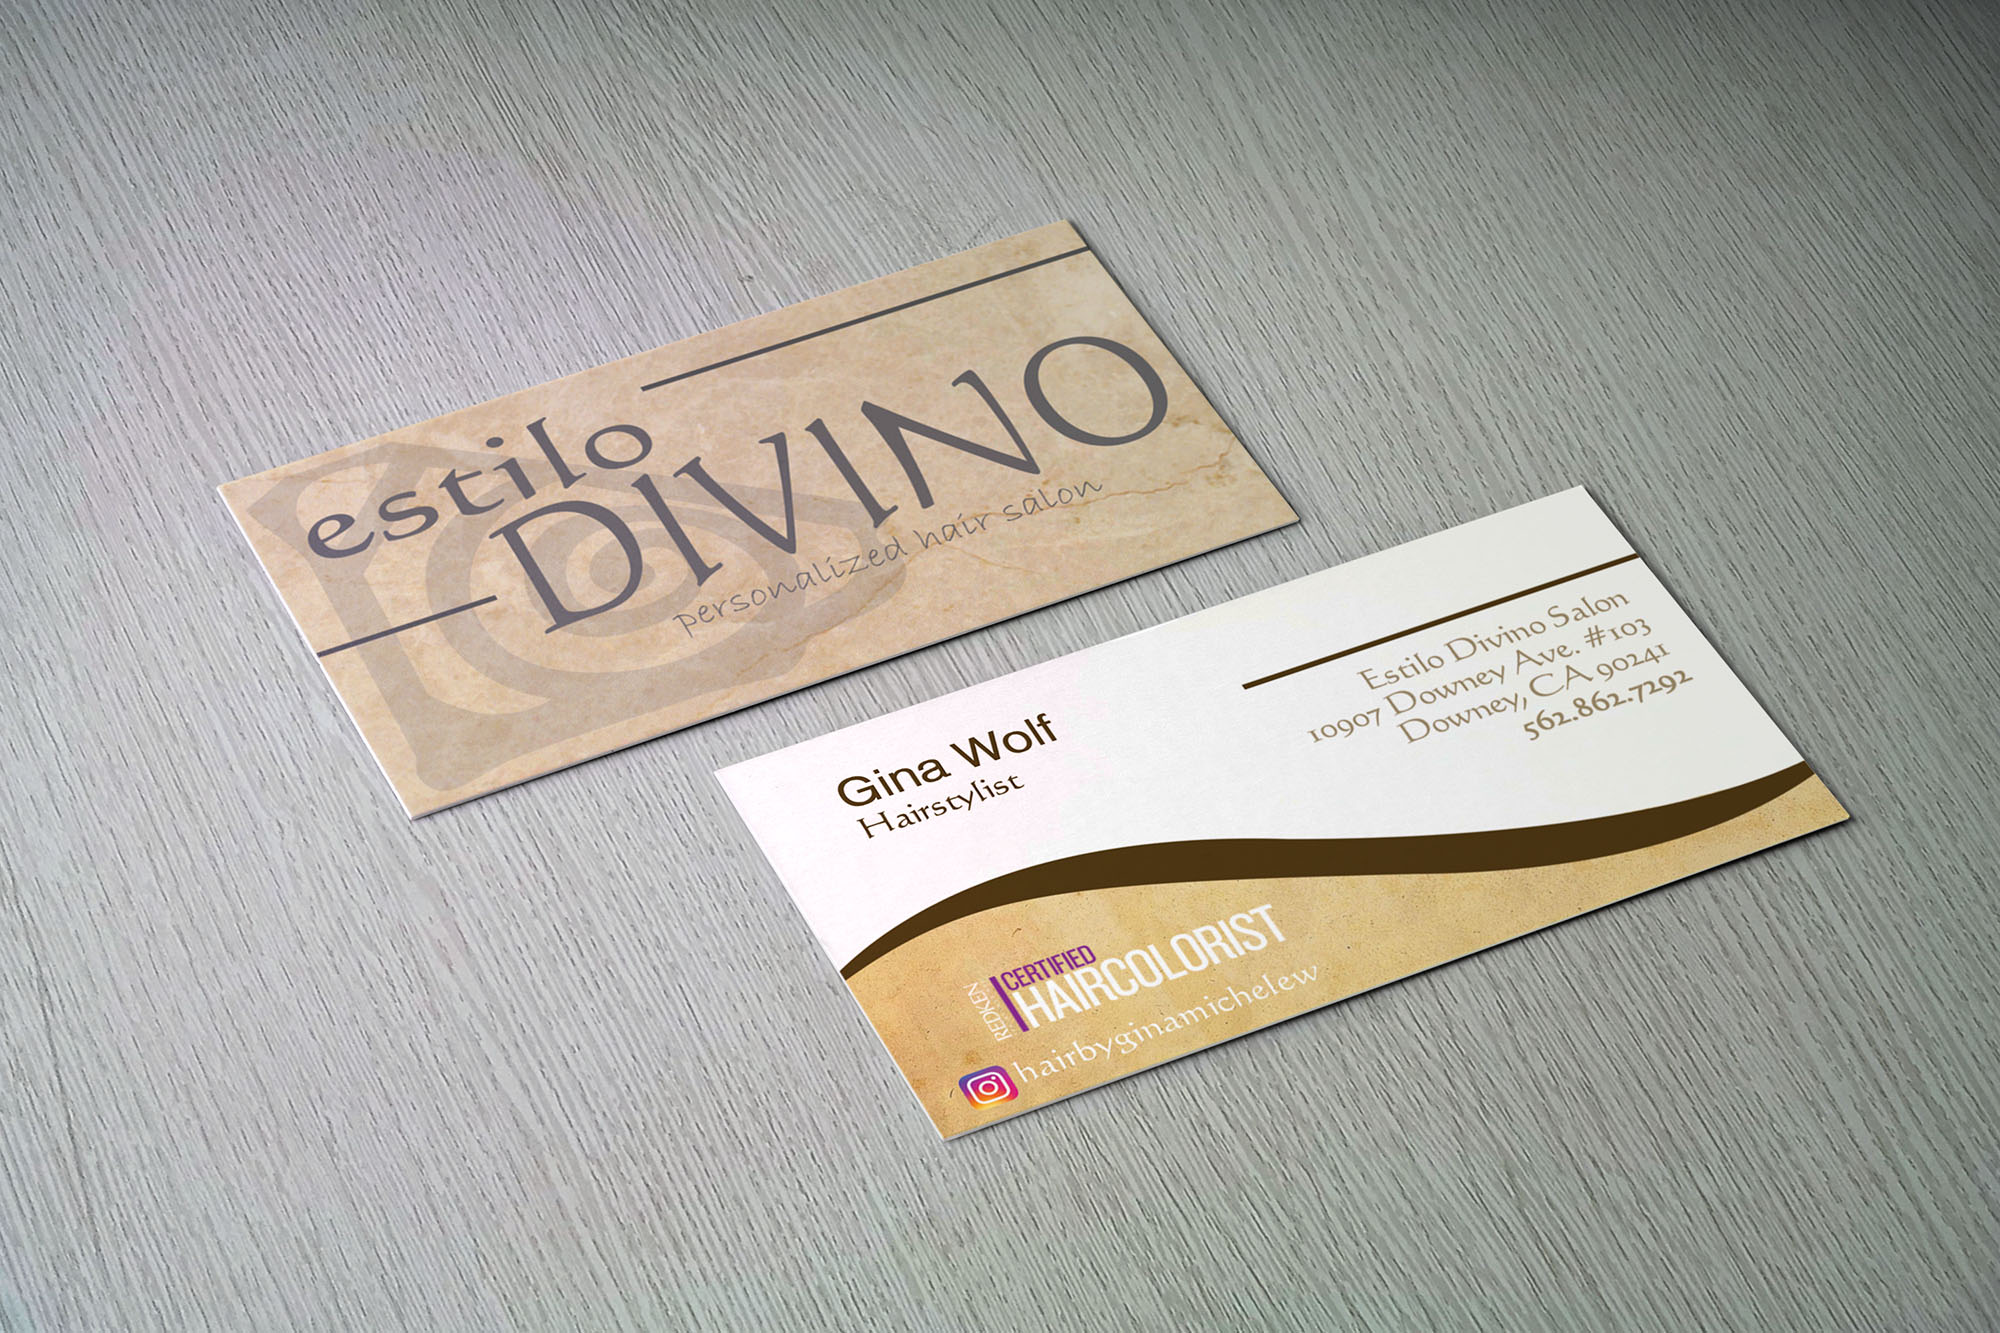 Hair Salon Business Card - LR Design